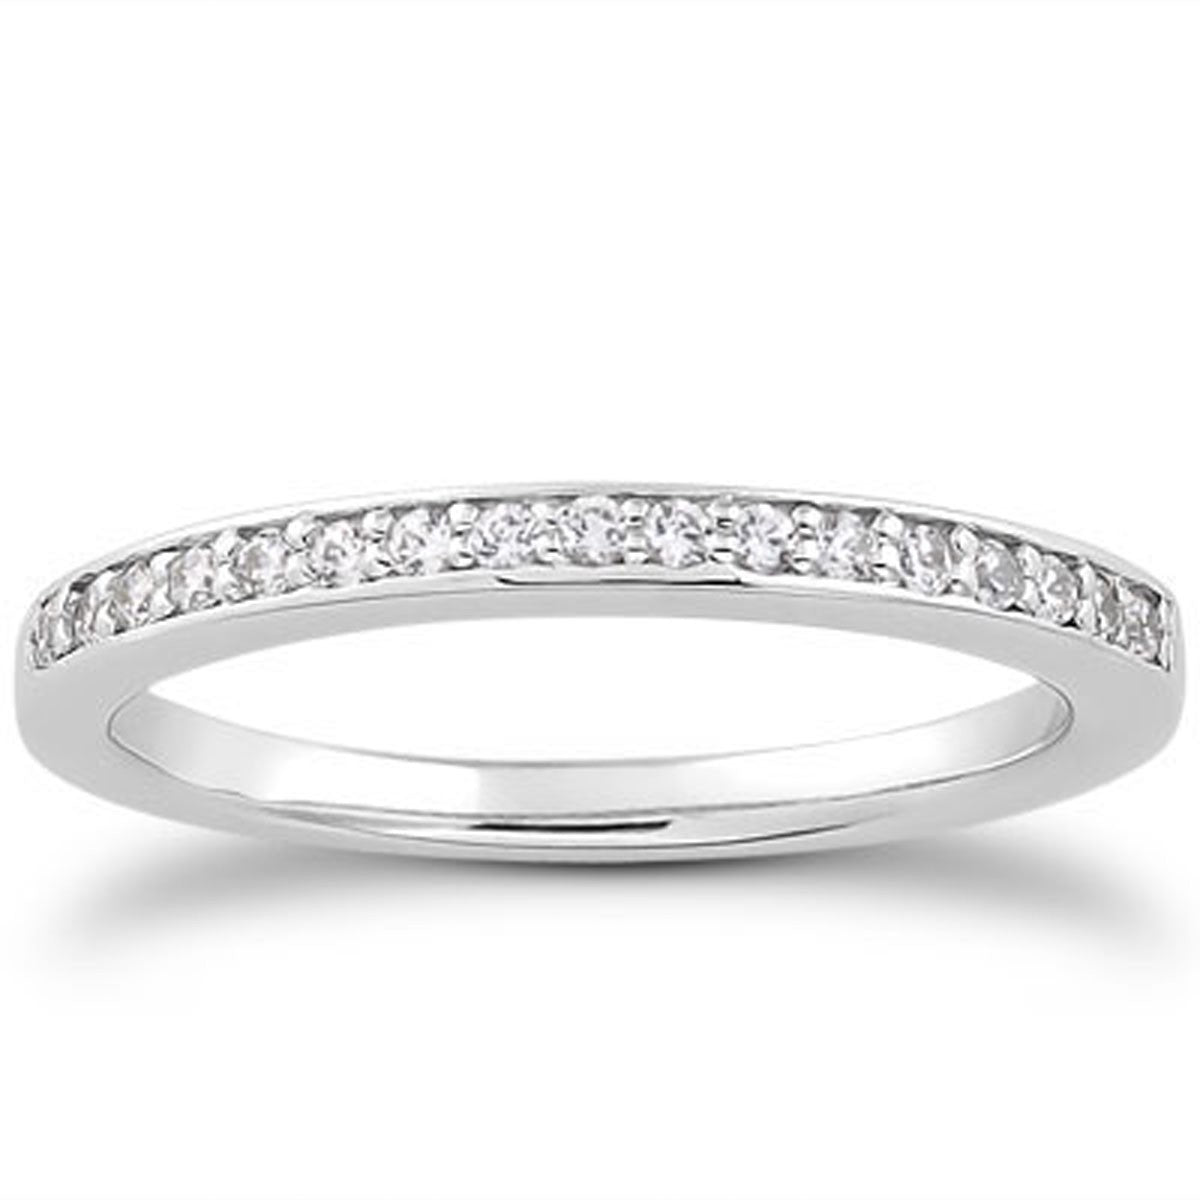 14k White Gold Micro-pave Flat Sided Diamond Wedding Ring Band